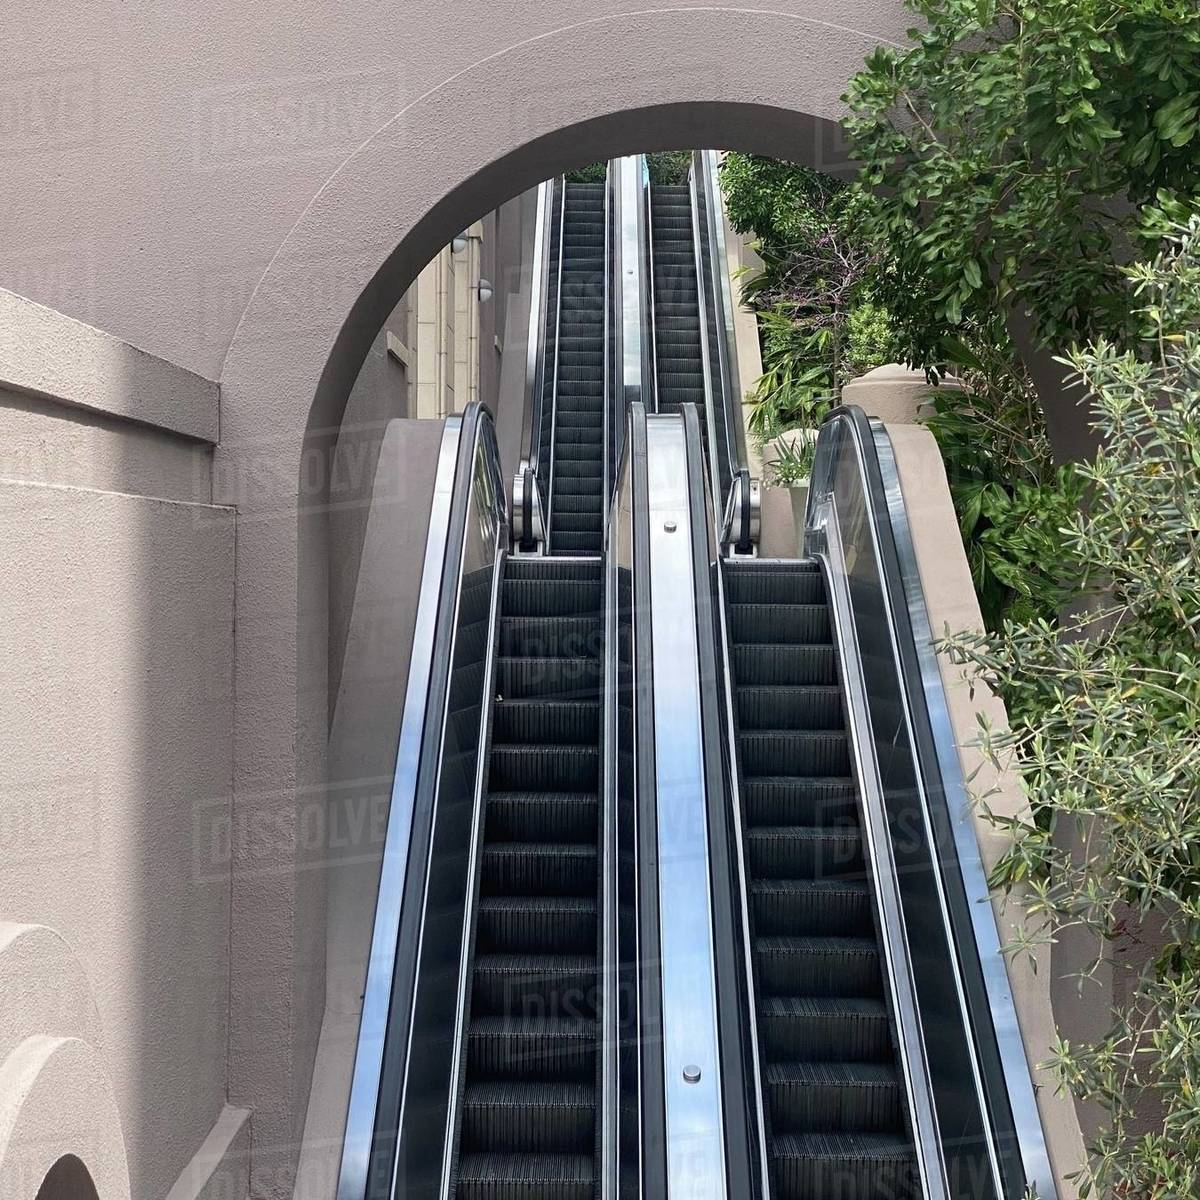 LOS ANGELES, CA, MAR 2020: escalators rising up through archways next to the US Bank Tower in Downtown Royalty-free stock photo